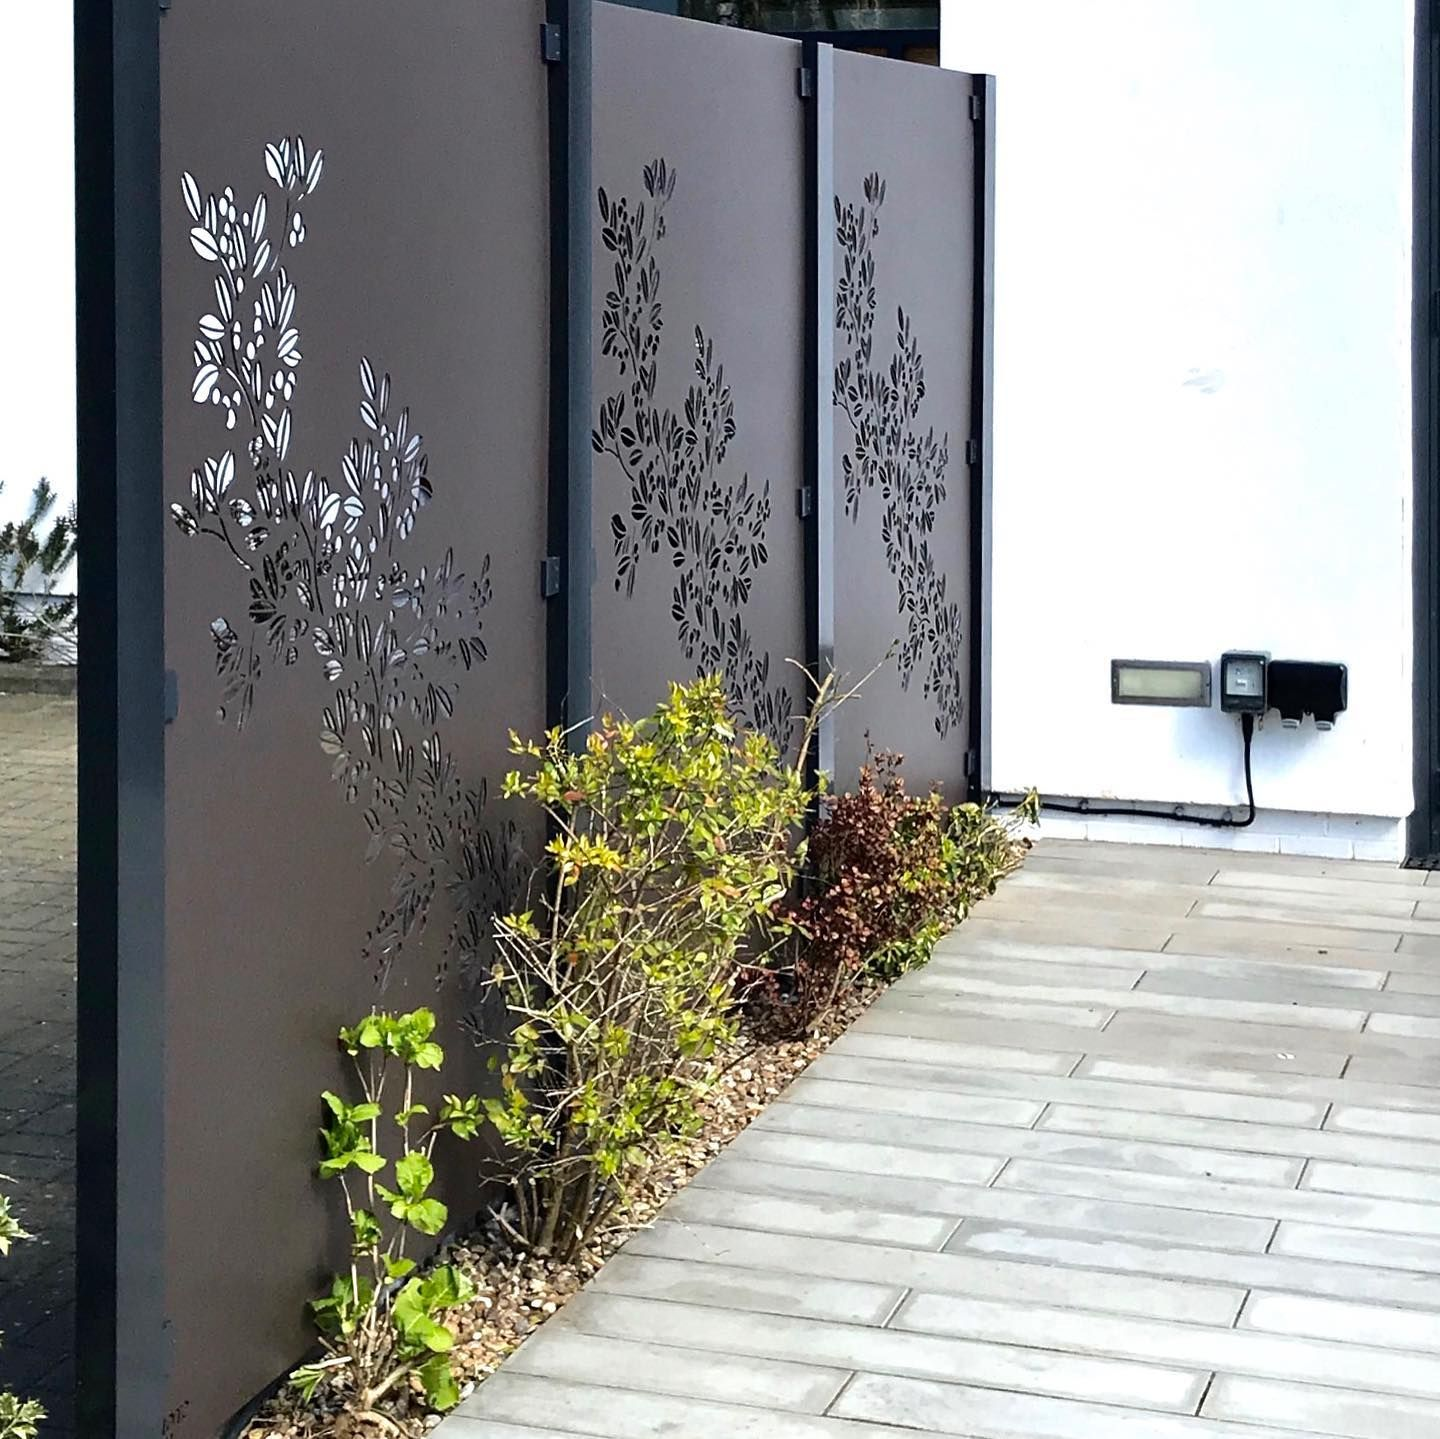 Amazing DIY installation of our aluminium Drift panels! We designed our product to be so easy to install that we could do it ourselves. No special tools needed, just follow our simple guide and you will be surprised by how easy the system is to install at home. #diygardendesign #diygarden #beautifulboundries #lasercutscreens #decorativescreens #decorativemetal #gardenscreens #gardenscreendesign #decorativefencepanels #decorativefence